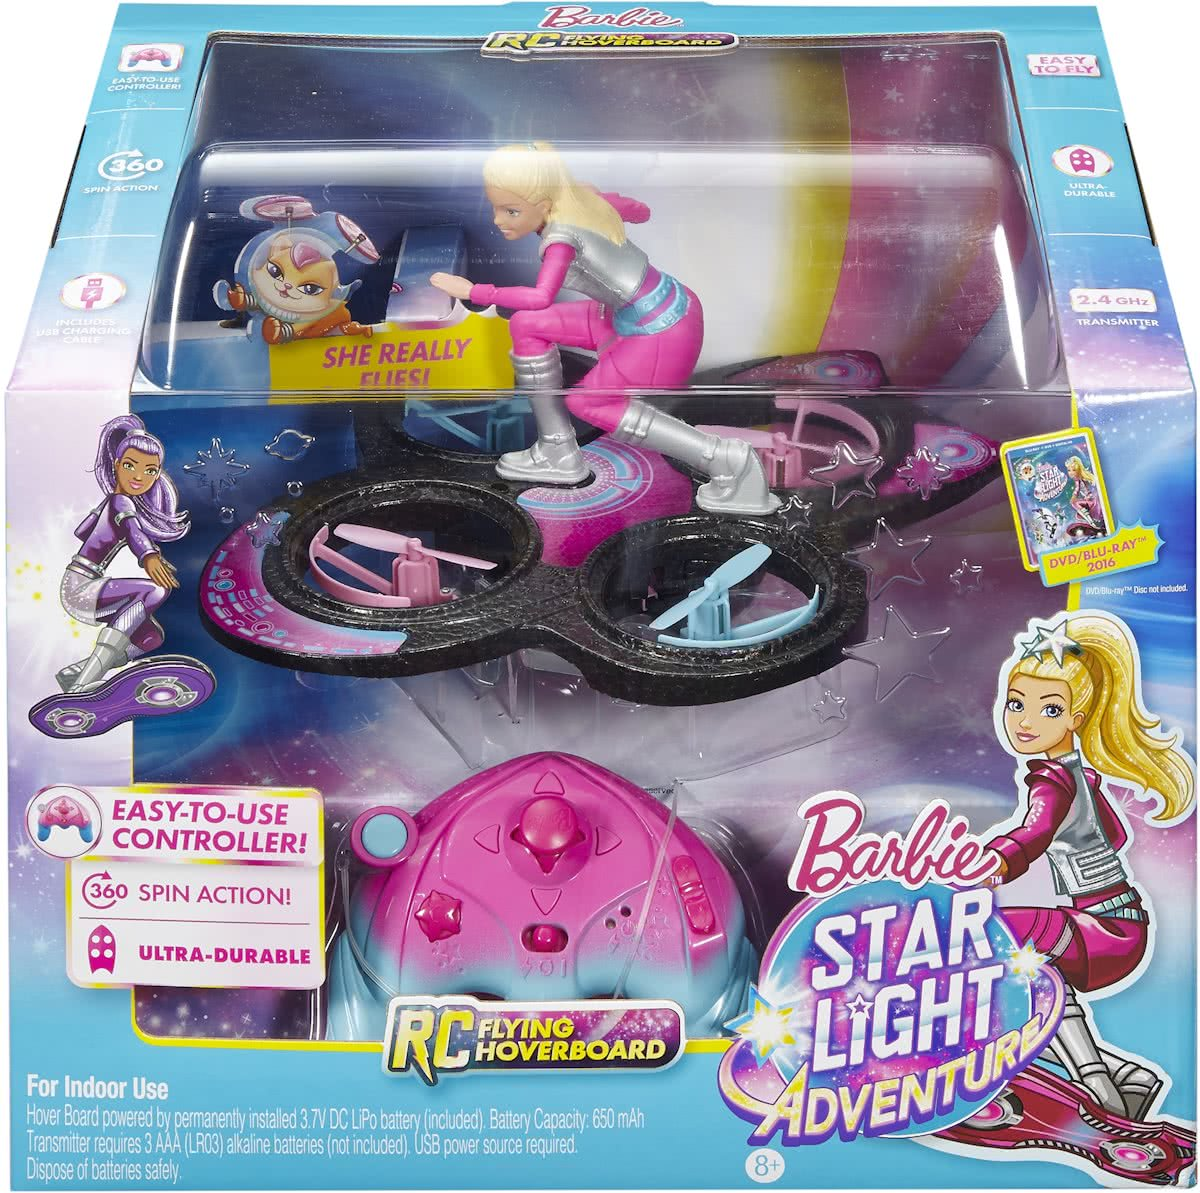 Barbie Star Light Avontuur RC Hoverboard - Barbiepop met Drone